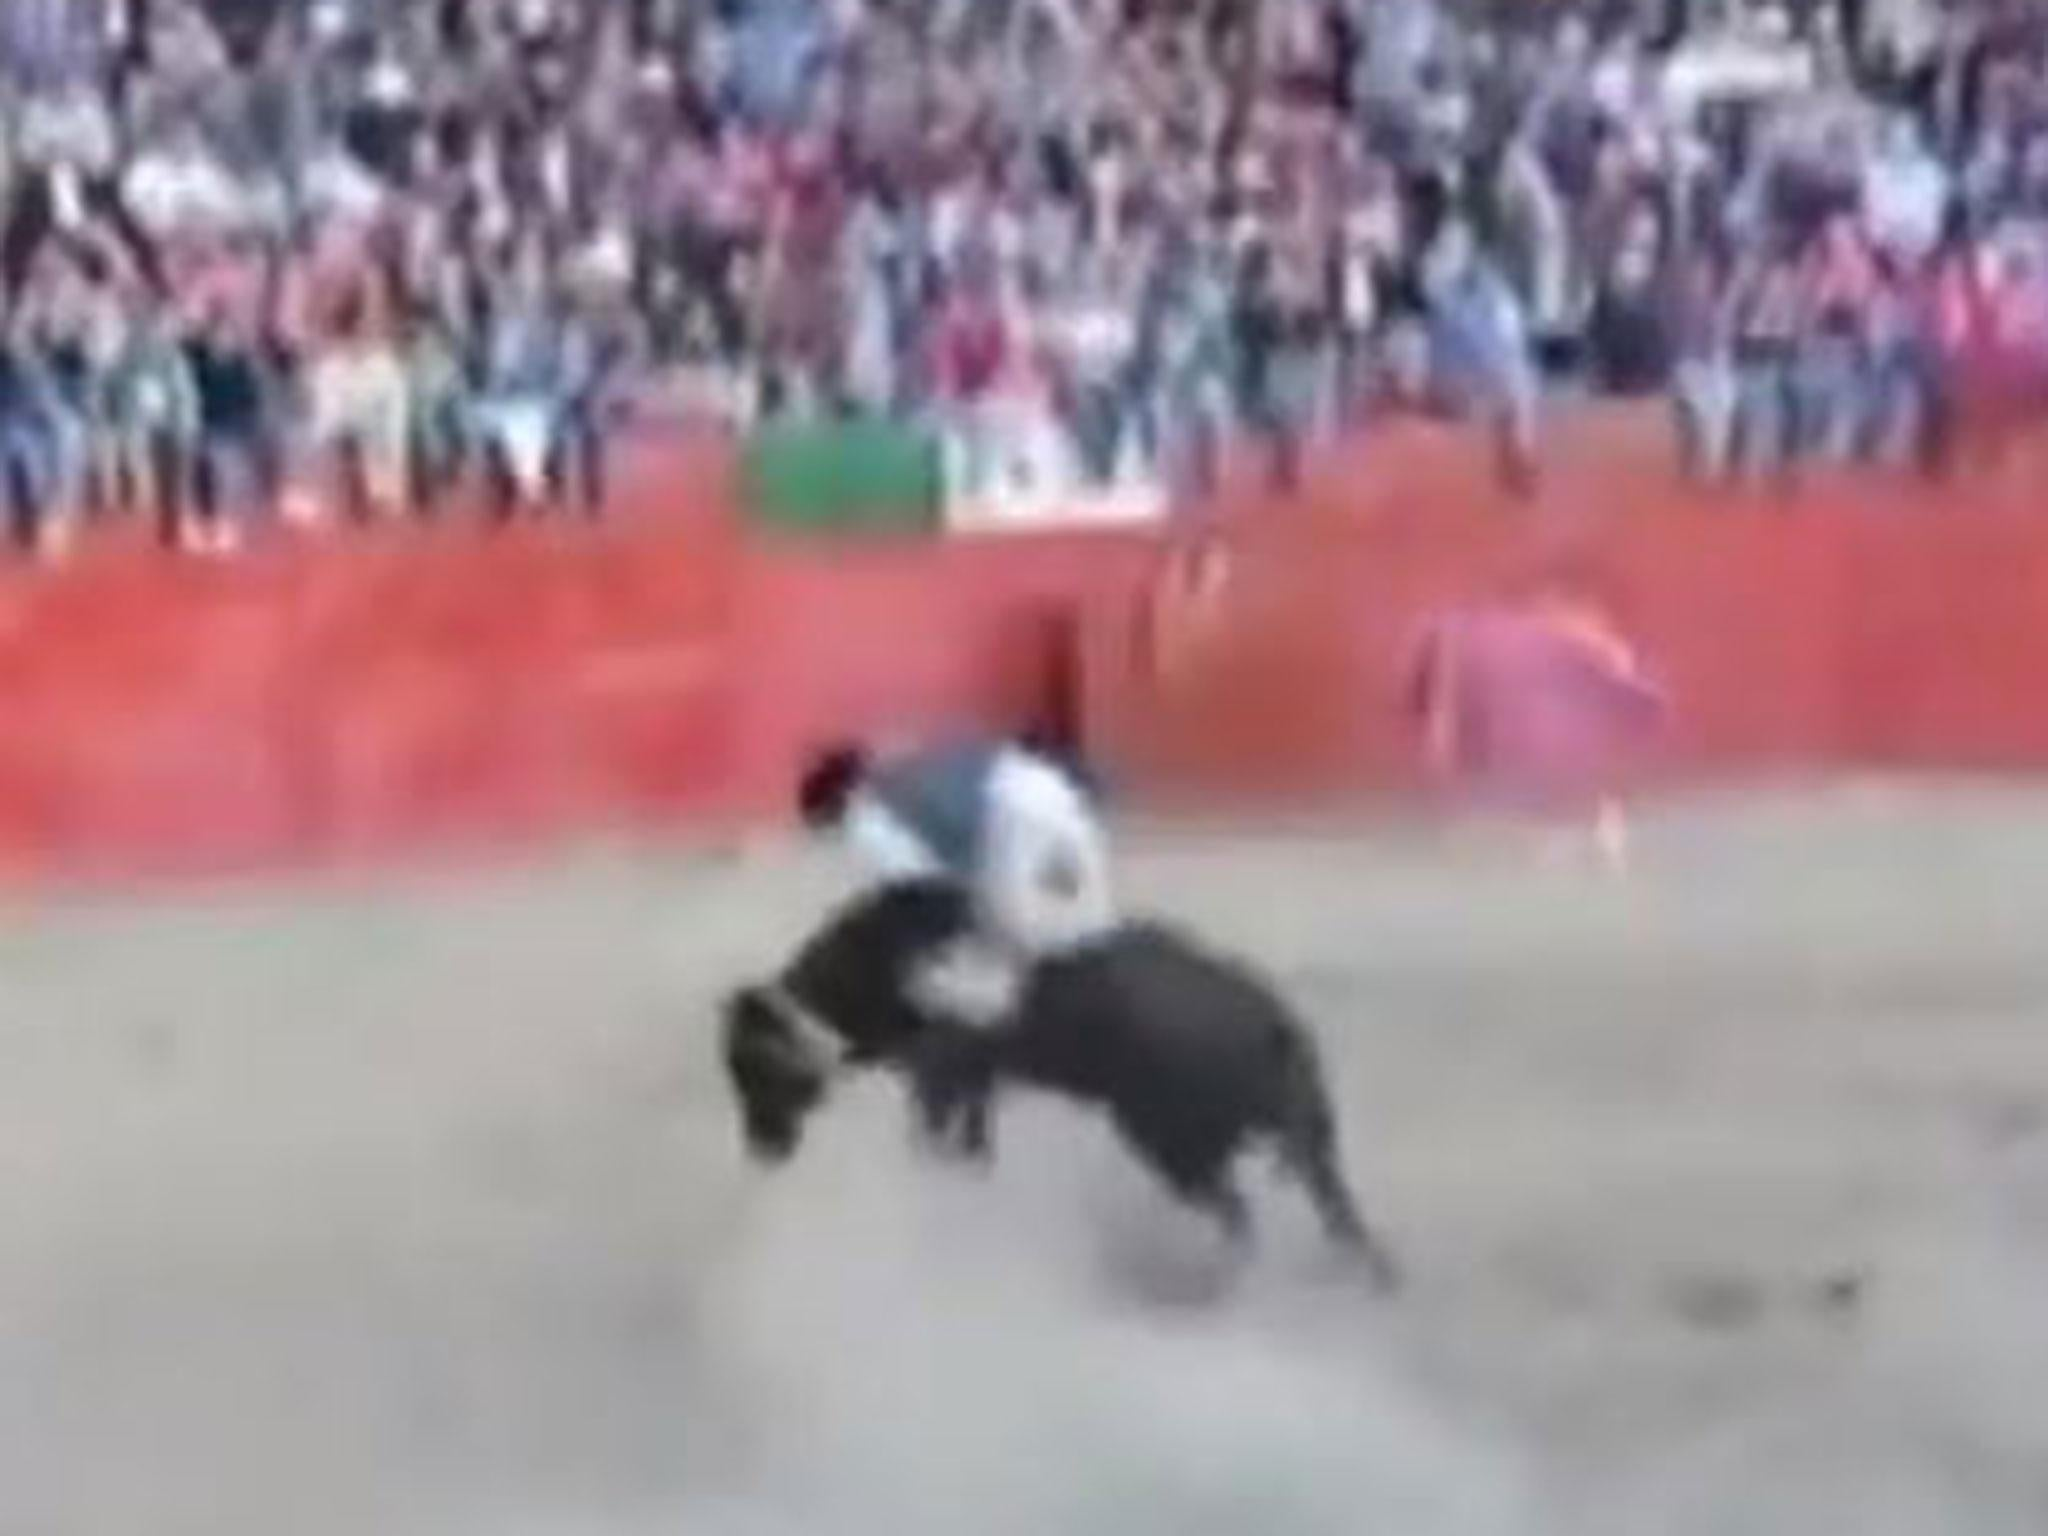 Bullfighting - latest news, breaking stories and comment - The